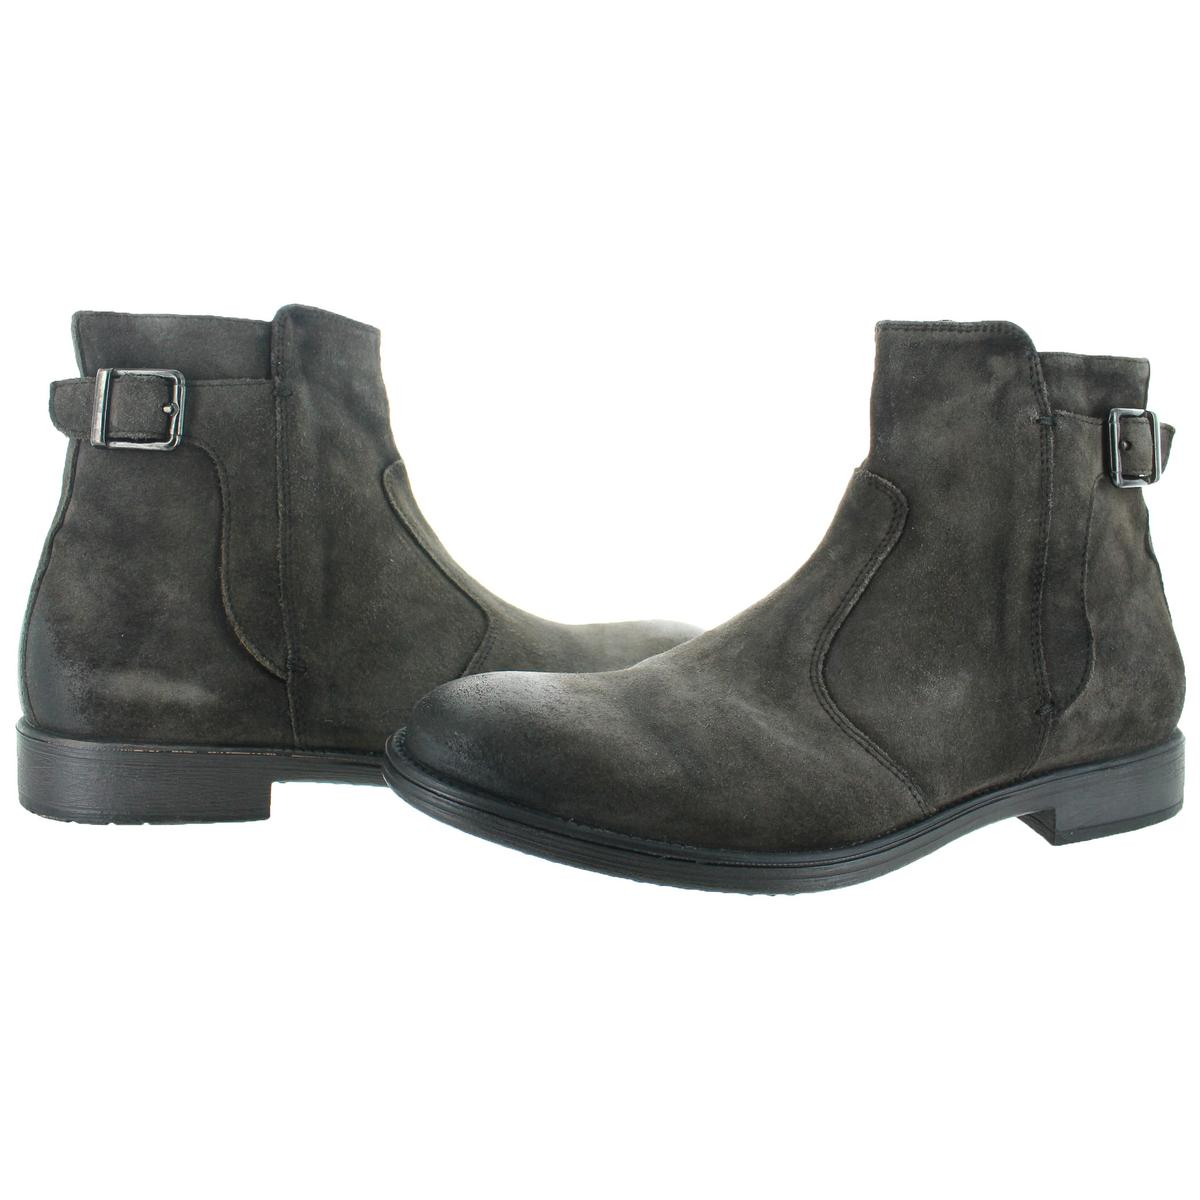 Geox-Jaylon-Buckle-Men-039-s-Casual-Moto-Inspired-Boots thumbnail 7